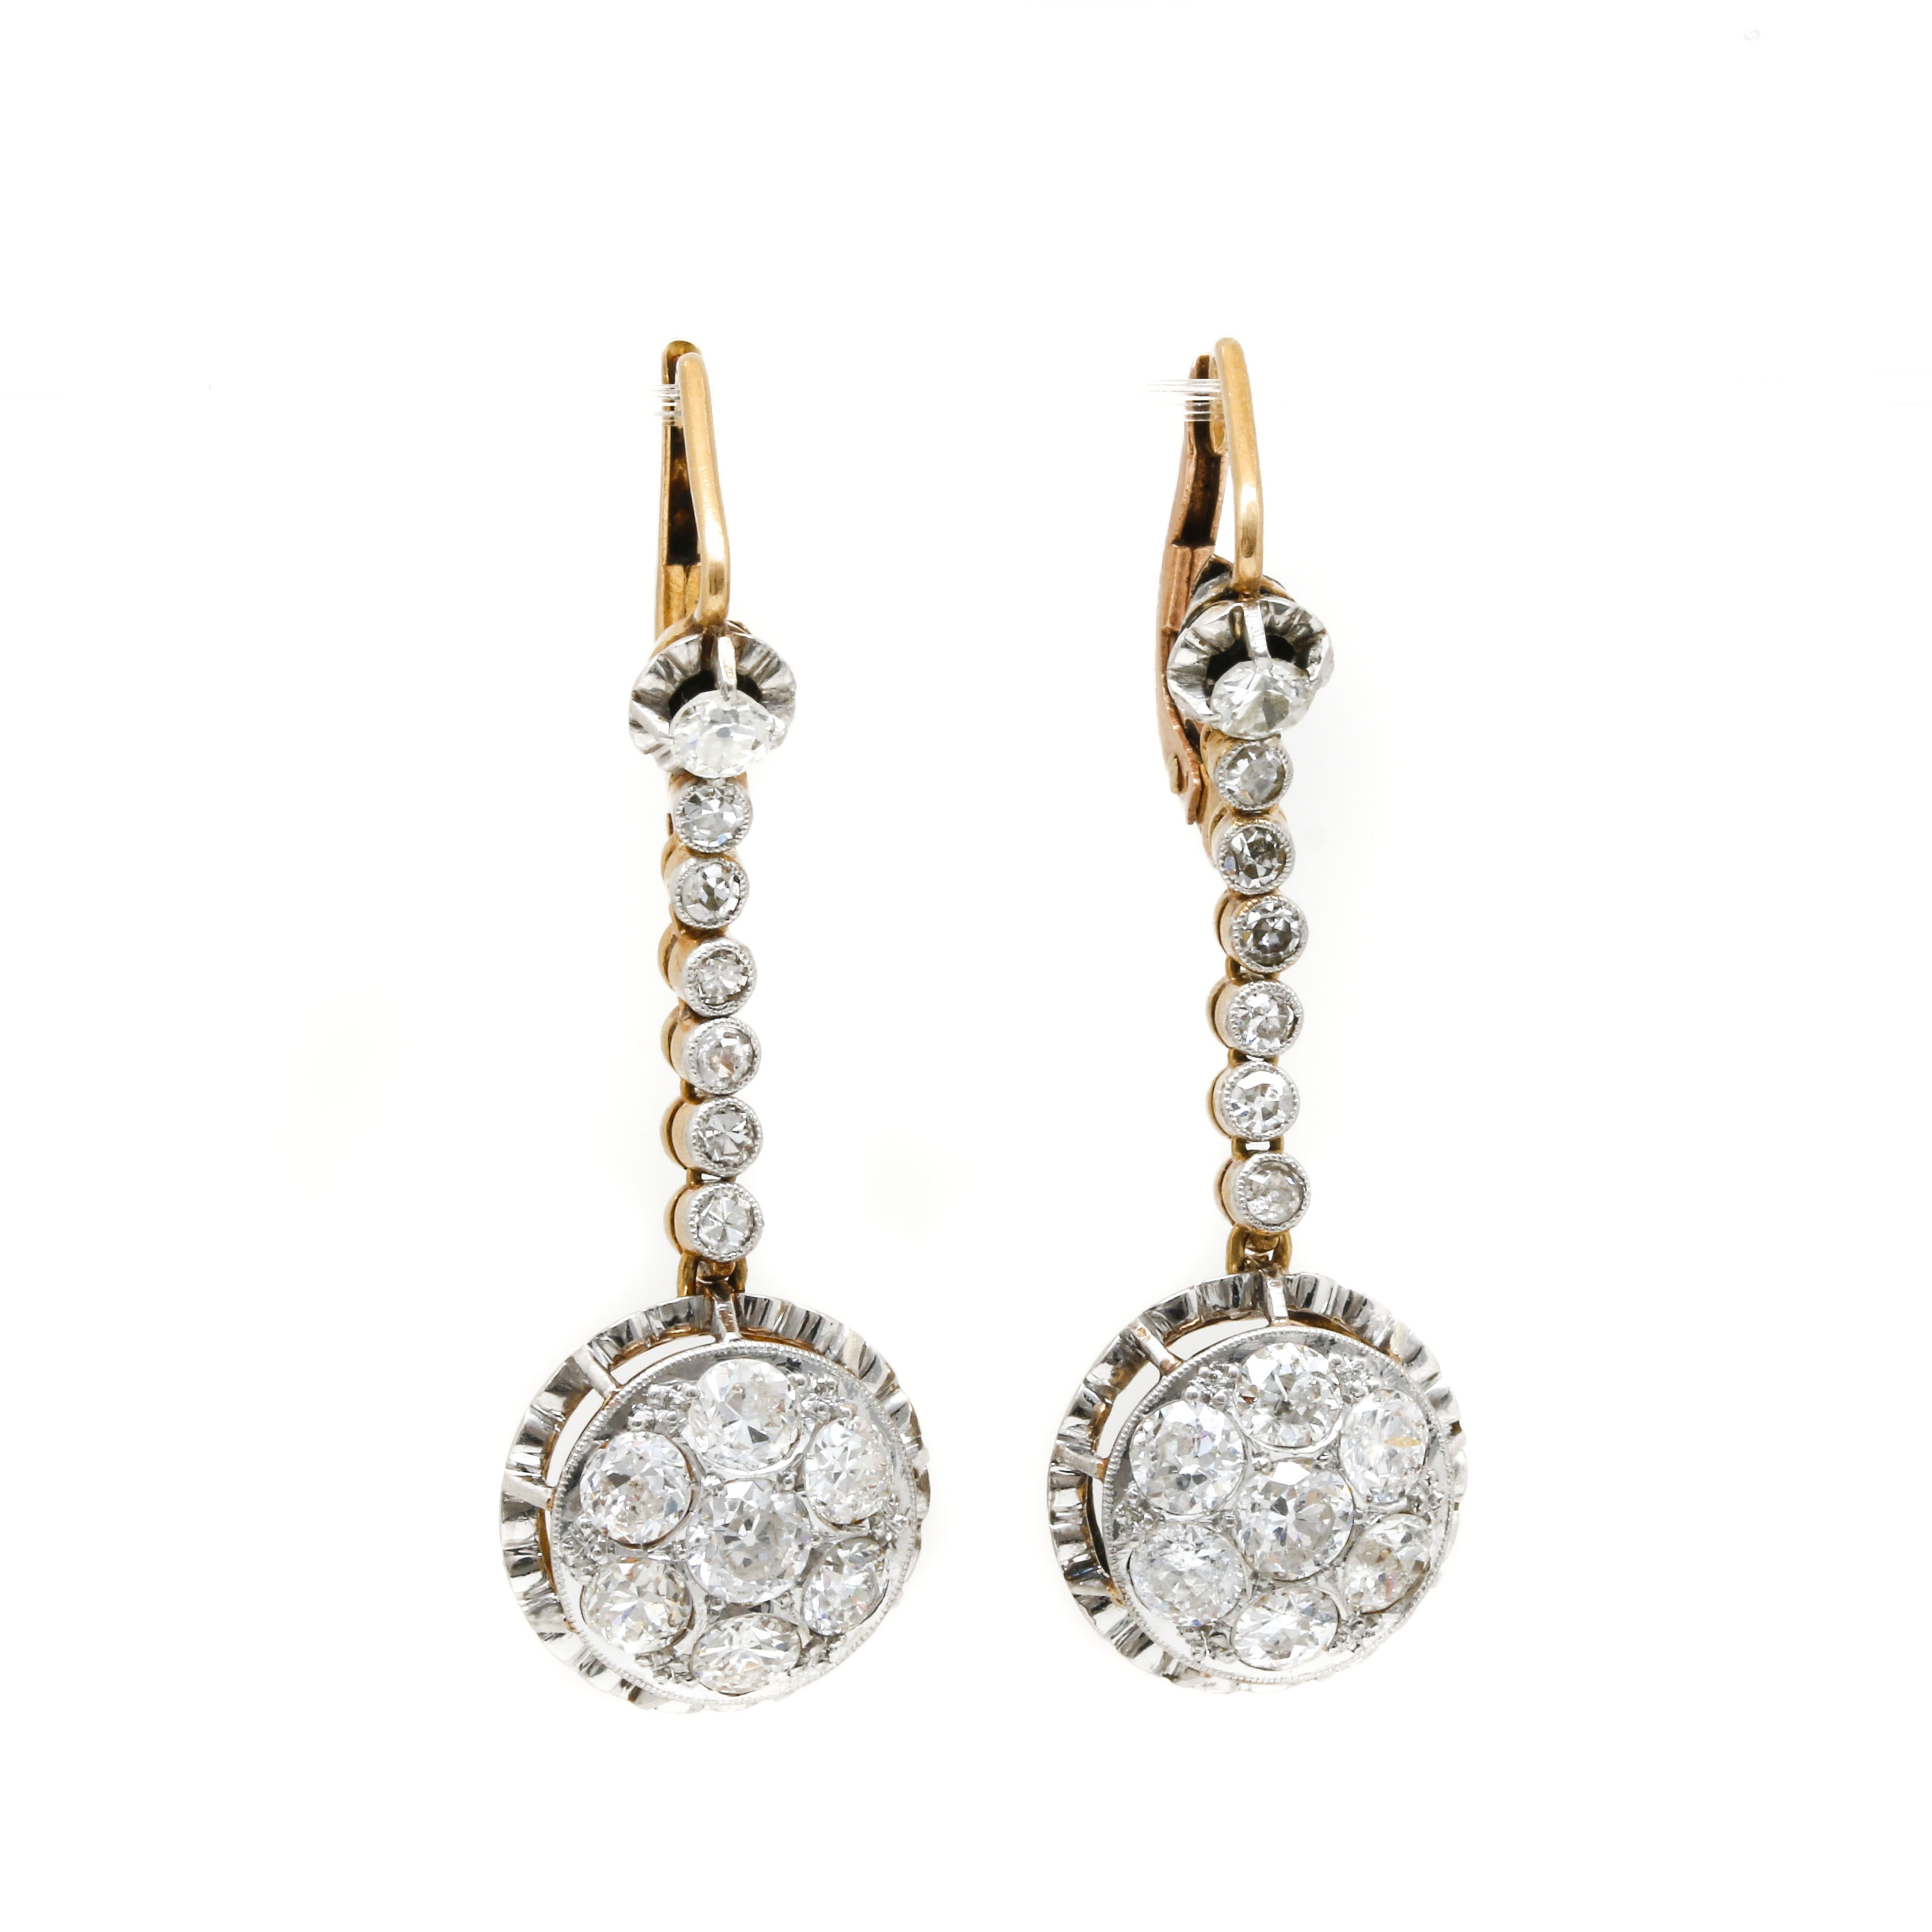 18K Yellow Gold and Platinum 2.70 CTW Diamond Earrings